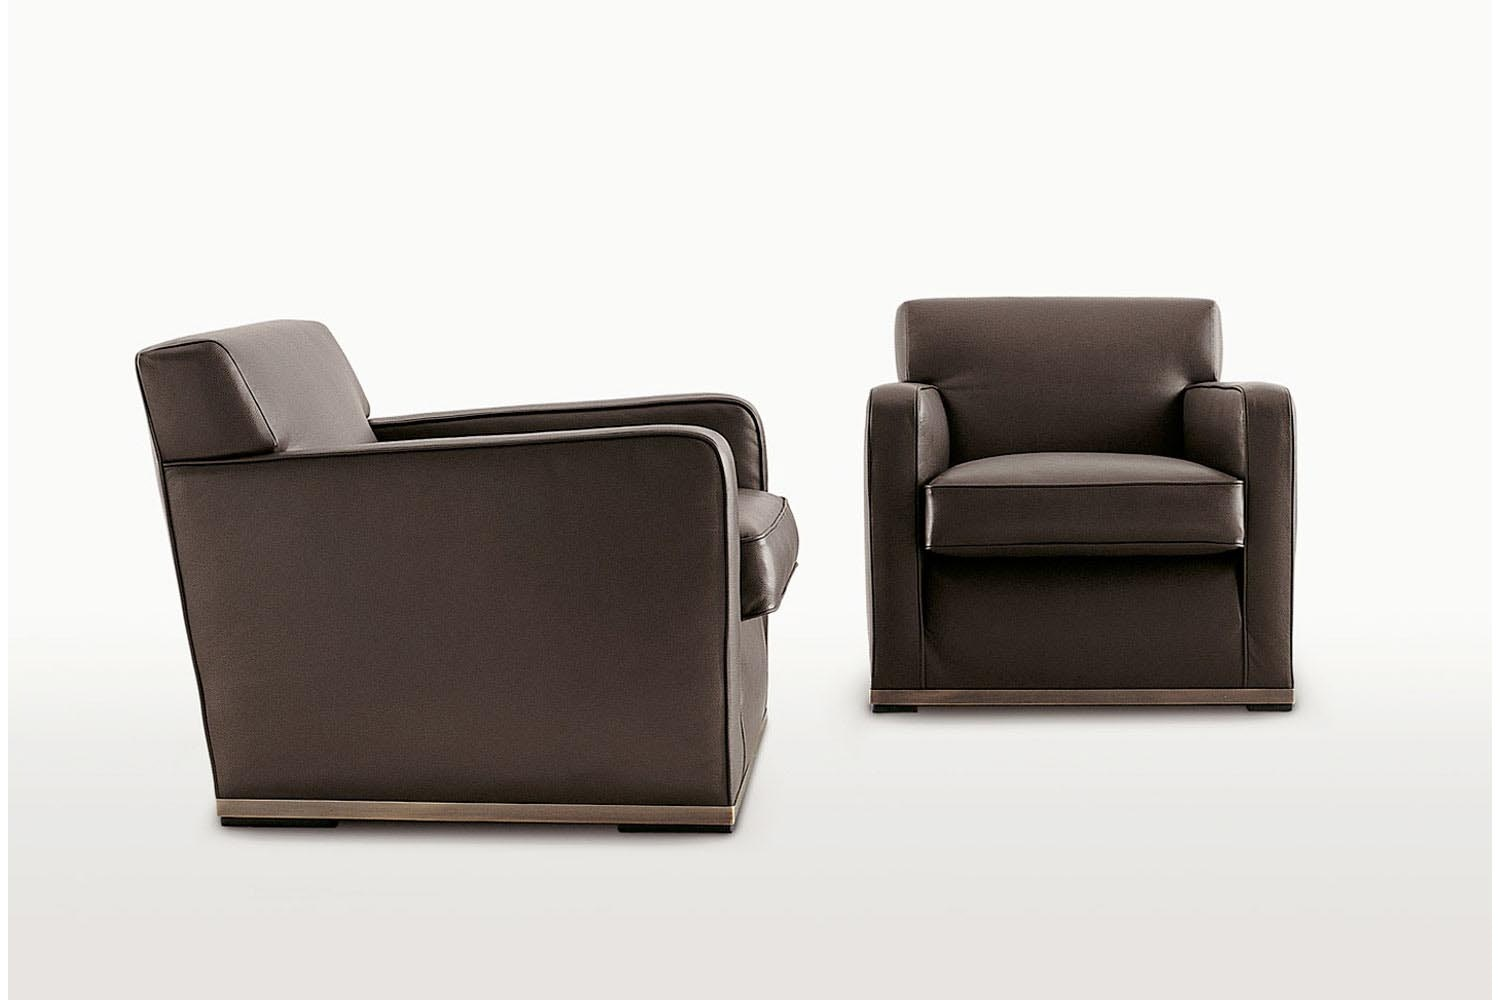 Imprimatur Armchair by Antonio Citterio for Maxalto